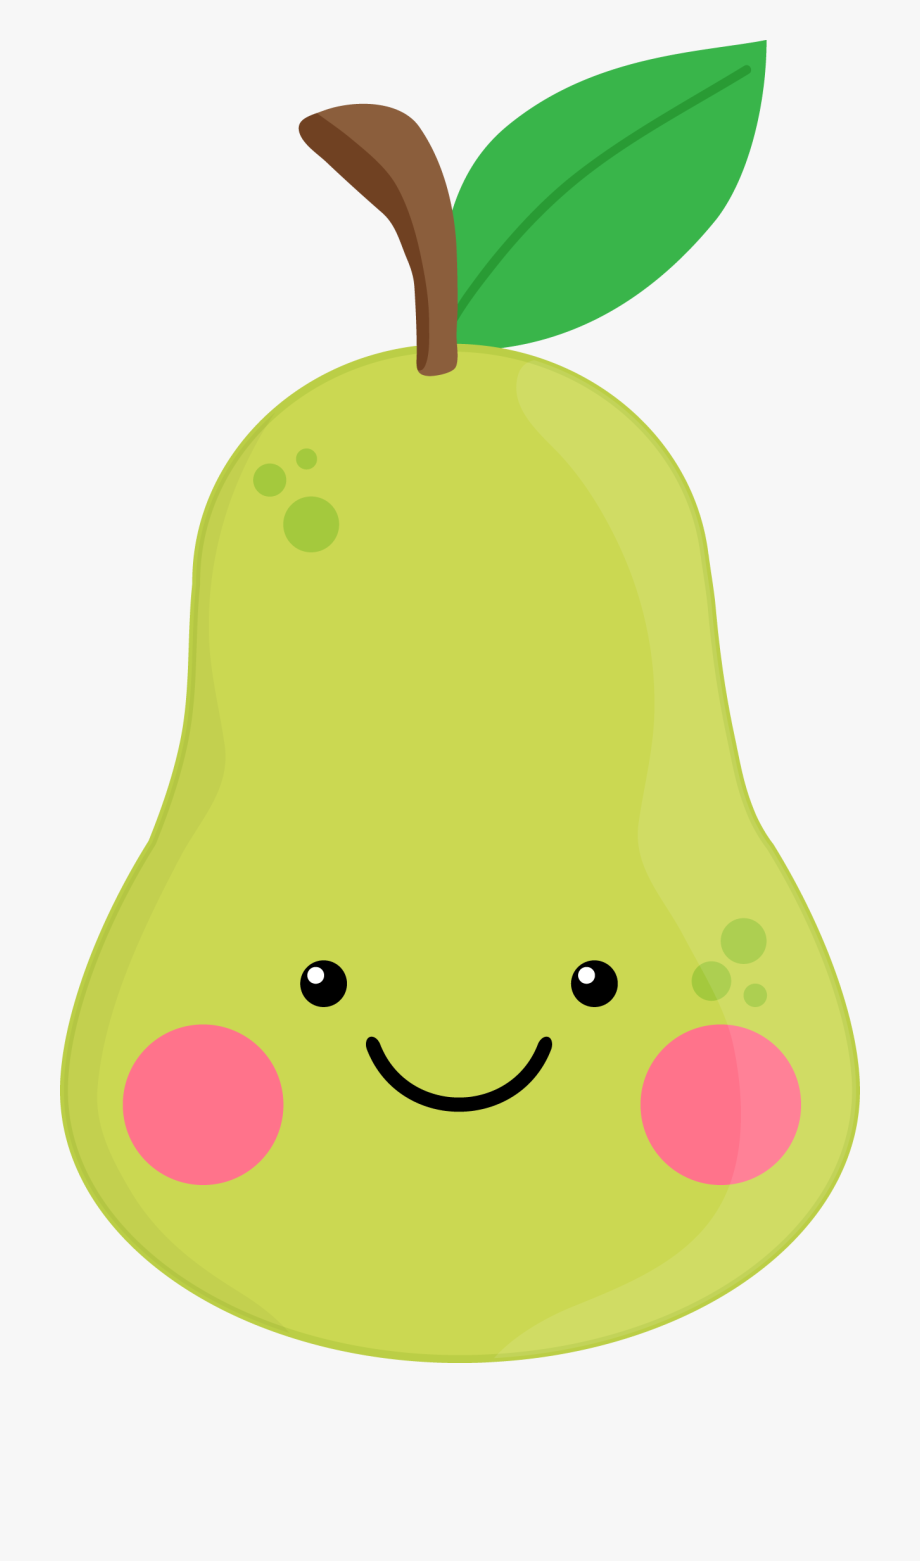 Green pear. Cute blueberry fruit clip